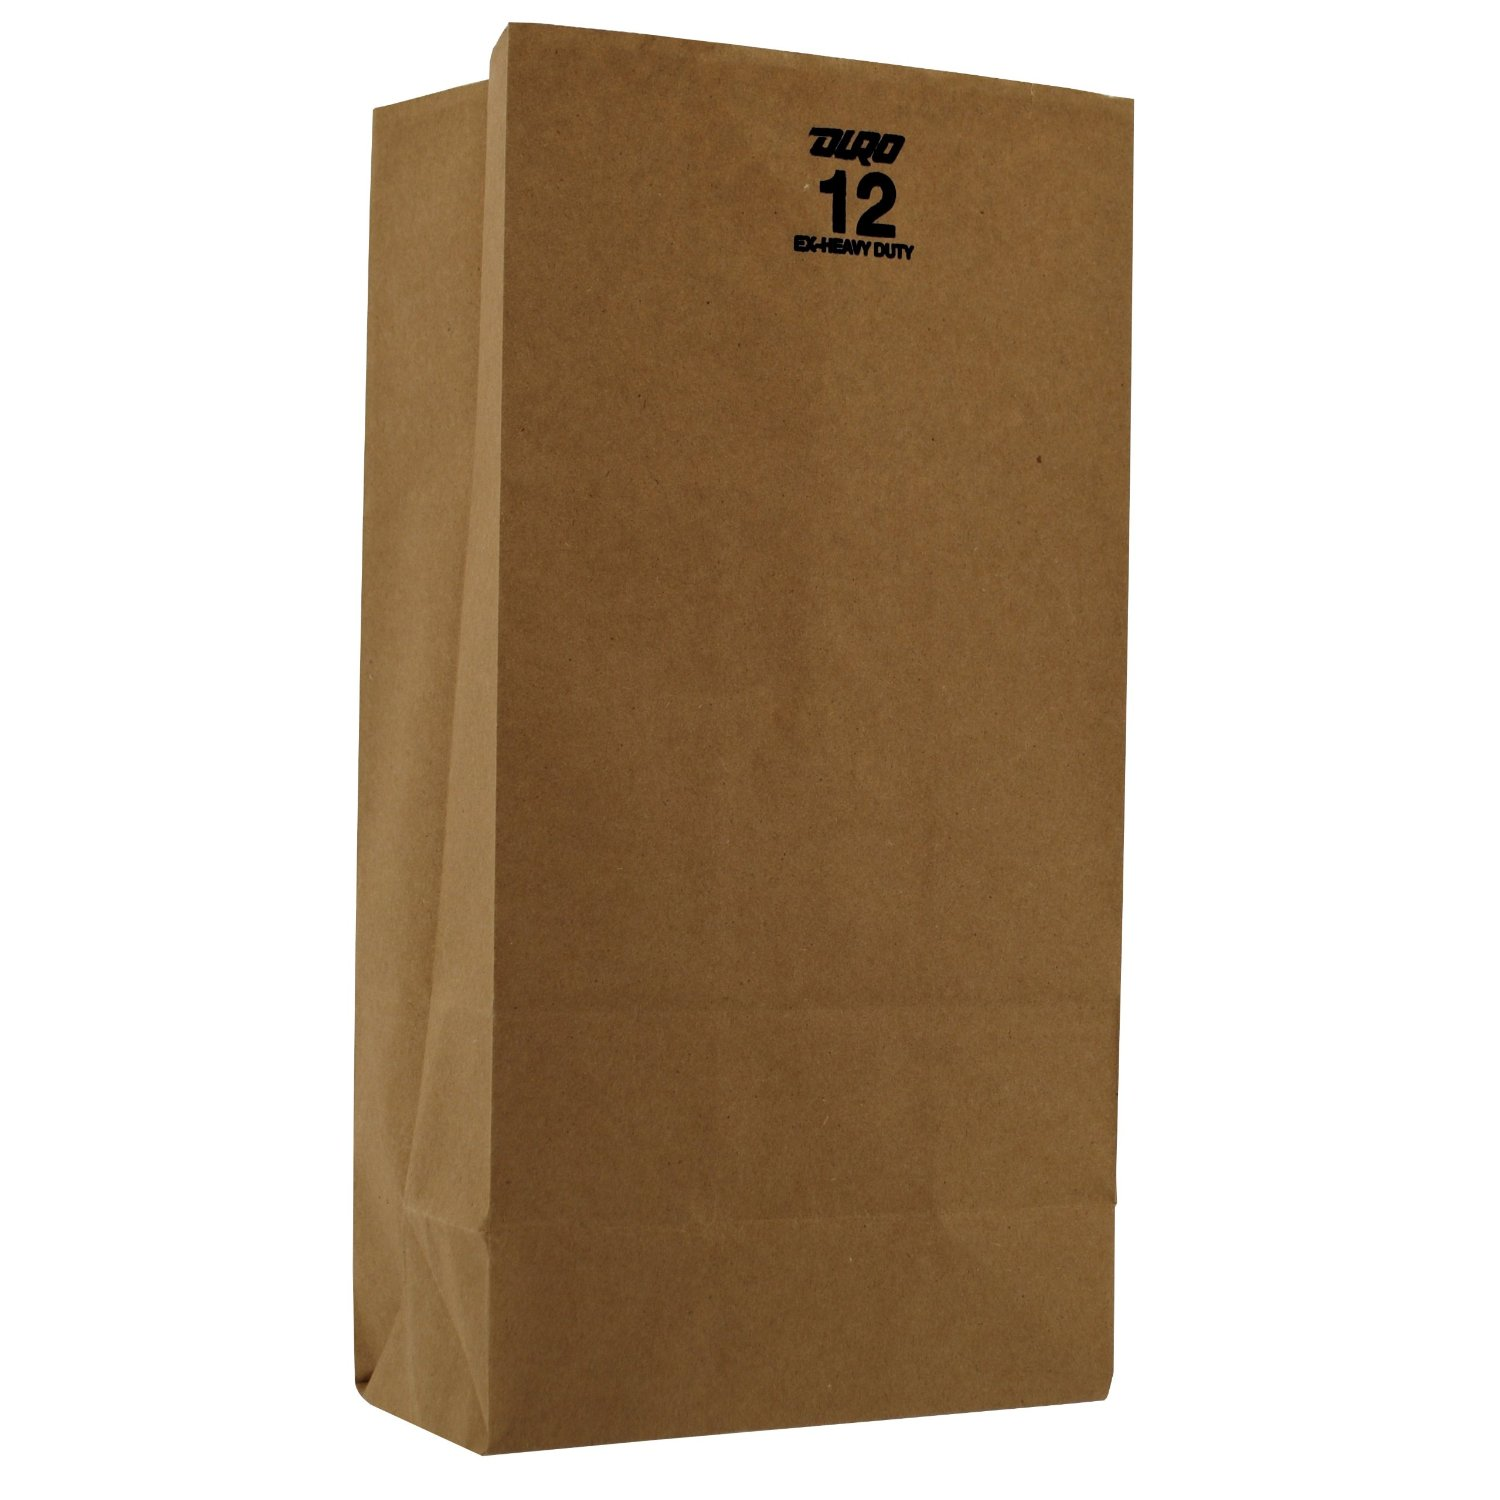 Duro Bag Kraft 12lb Husky Heavy Duty Recycled Bag 29812